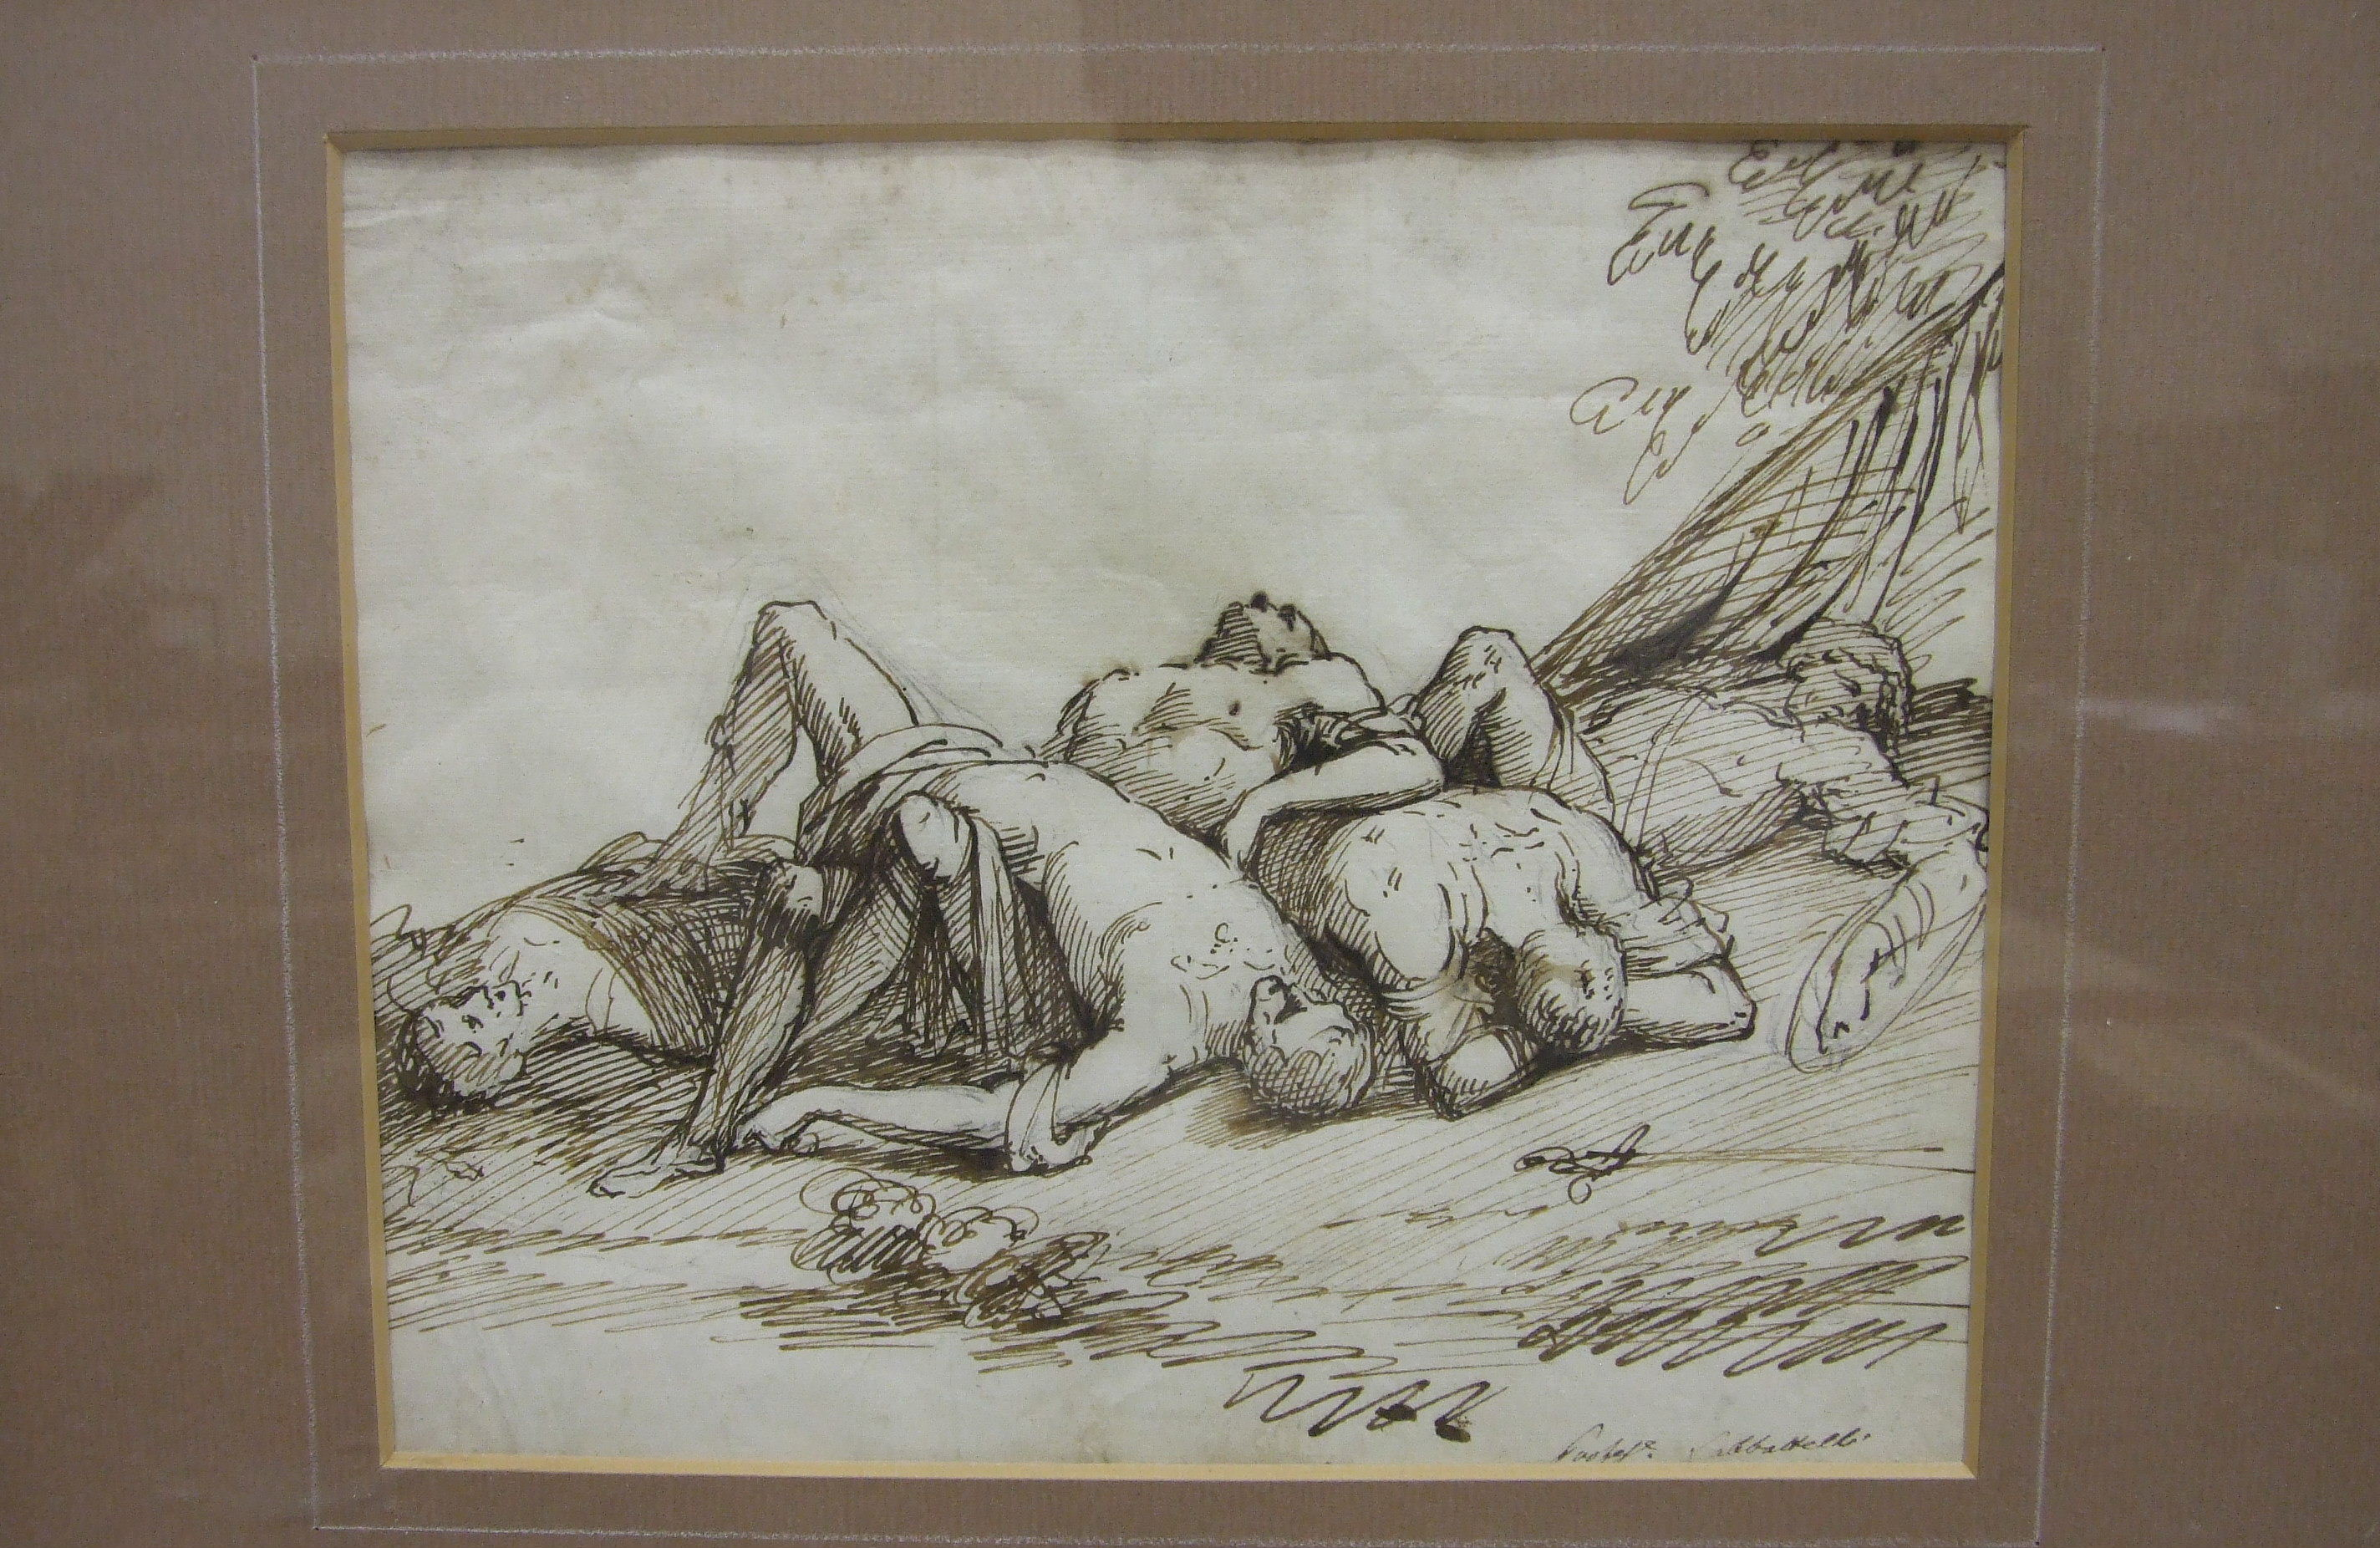 Lot 32 - Sabatelli, 'Wounded figures on a battlefield', ink drawing, bears signature, 17 x 21cm and another